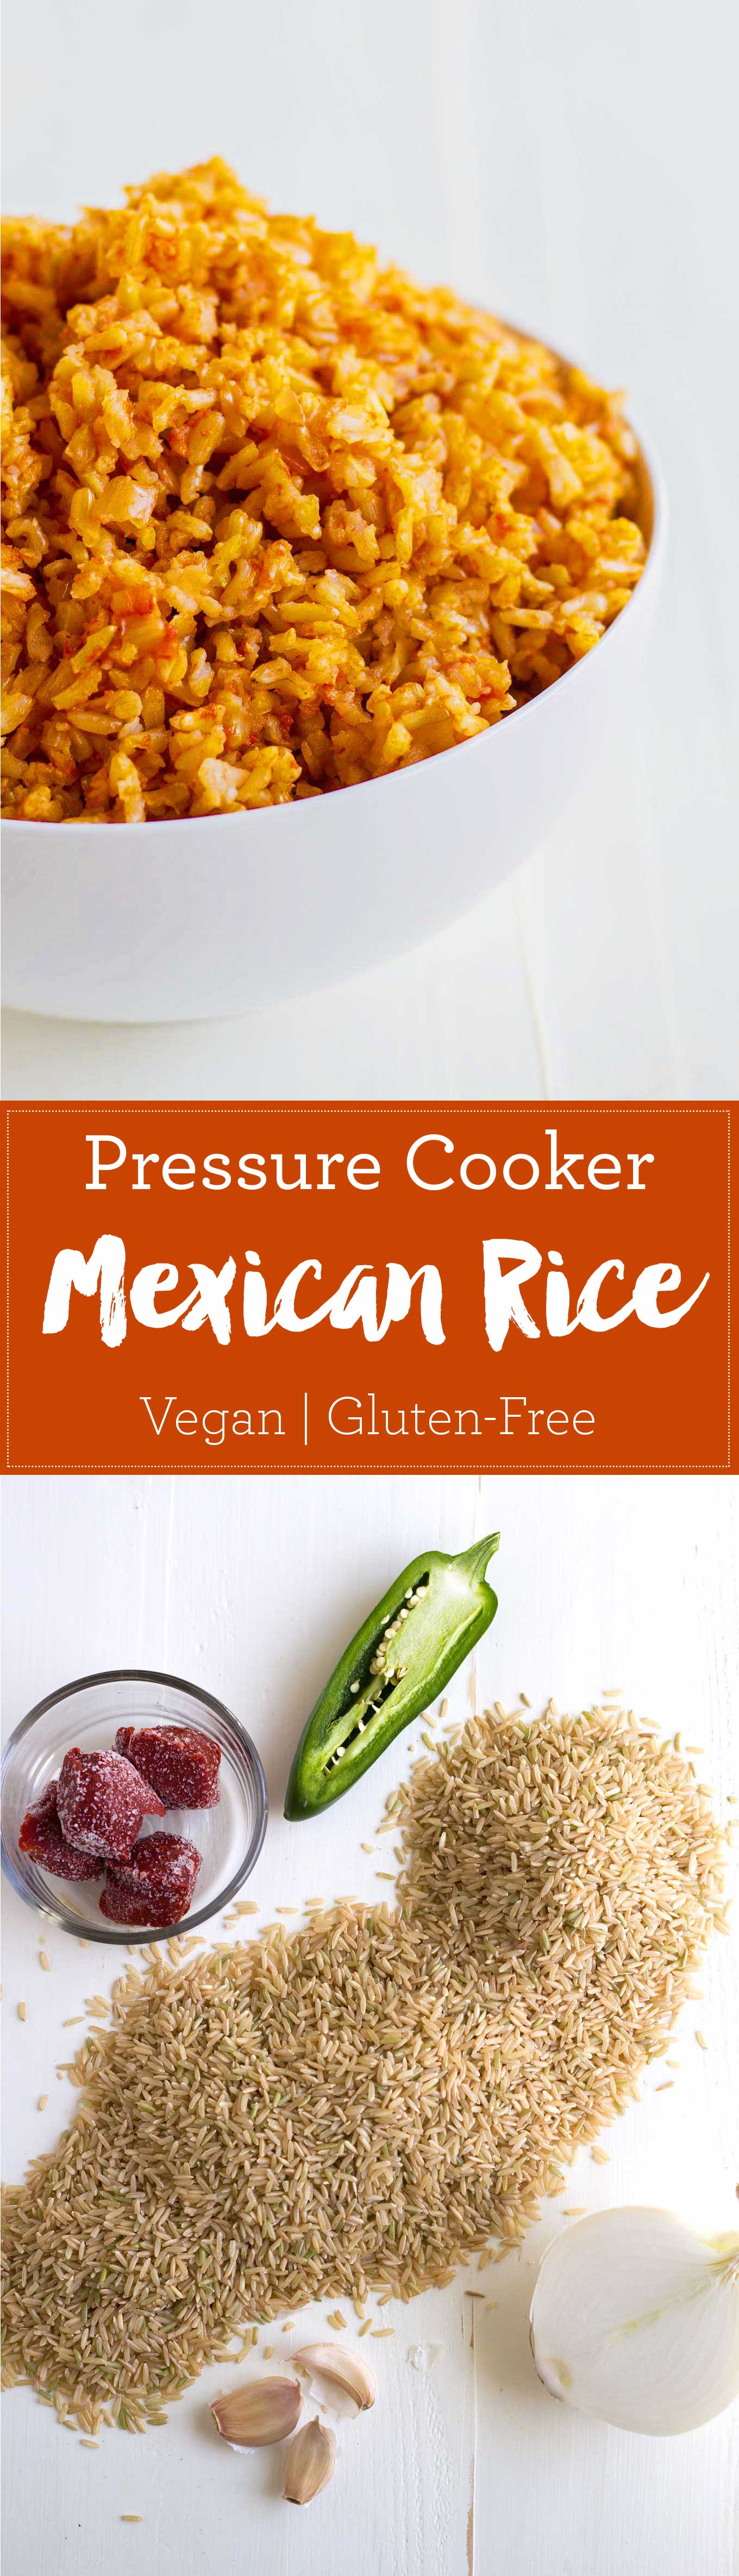 Make foolproof Mexican rice in a pressure cooker! Methods for brown and white rice included. Vegan, gluten-free. | http://eatwithinyourmeans.com